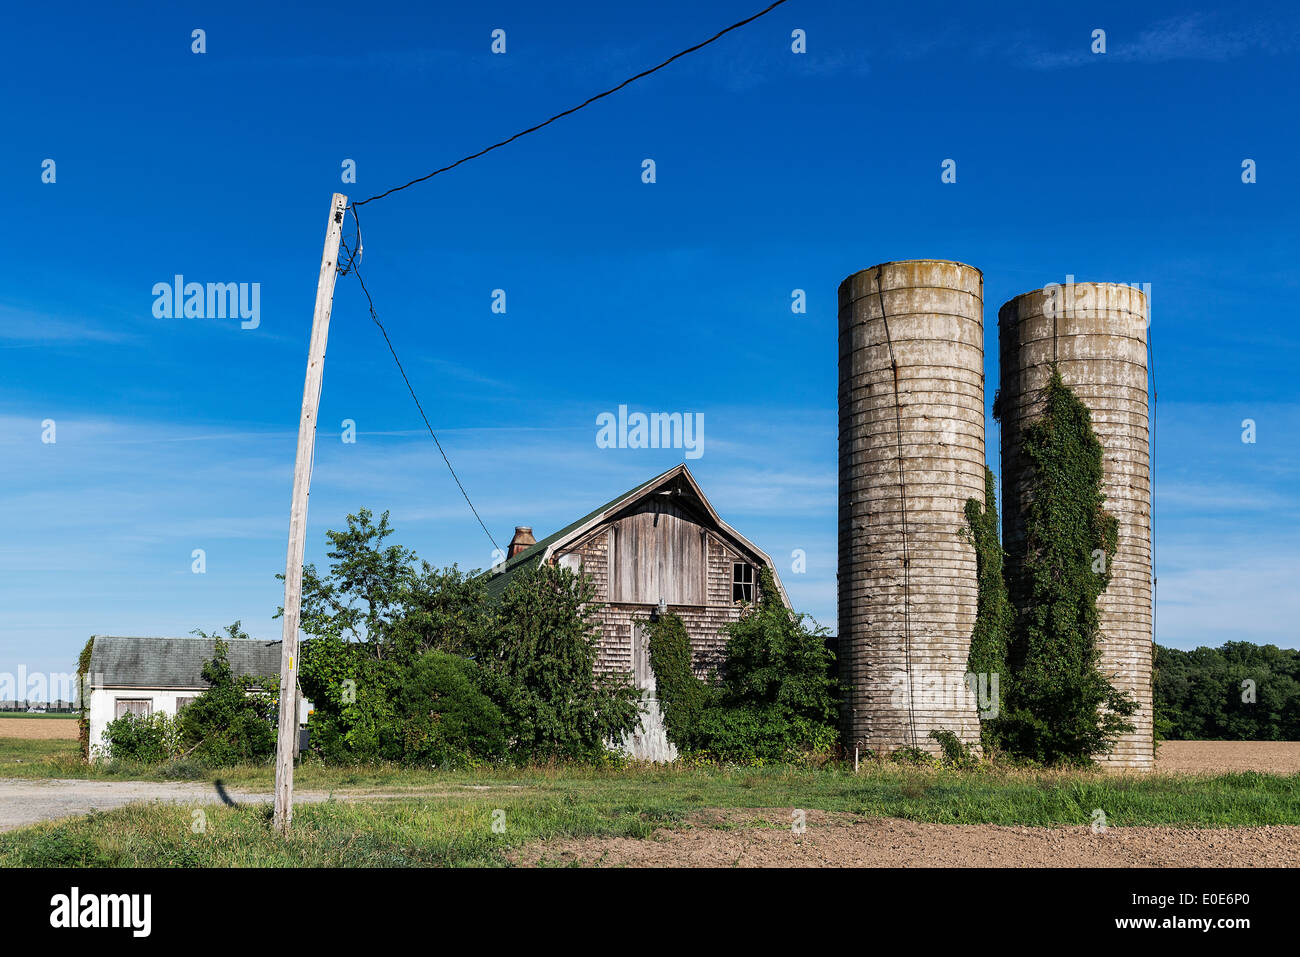 Neglected barn and silos, Delaware, USA - Stock Image